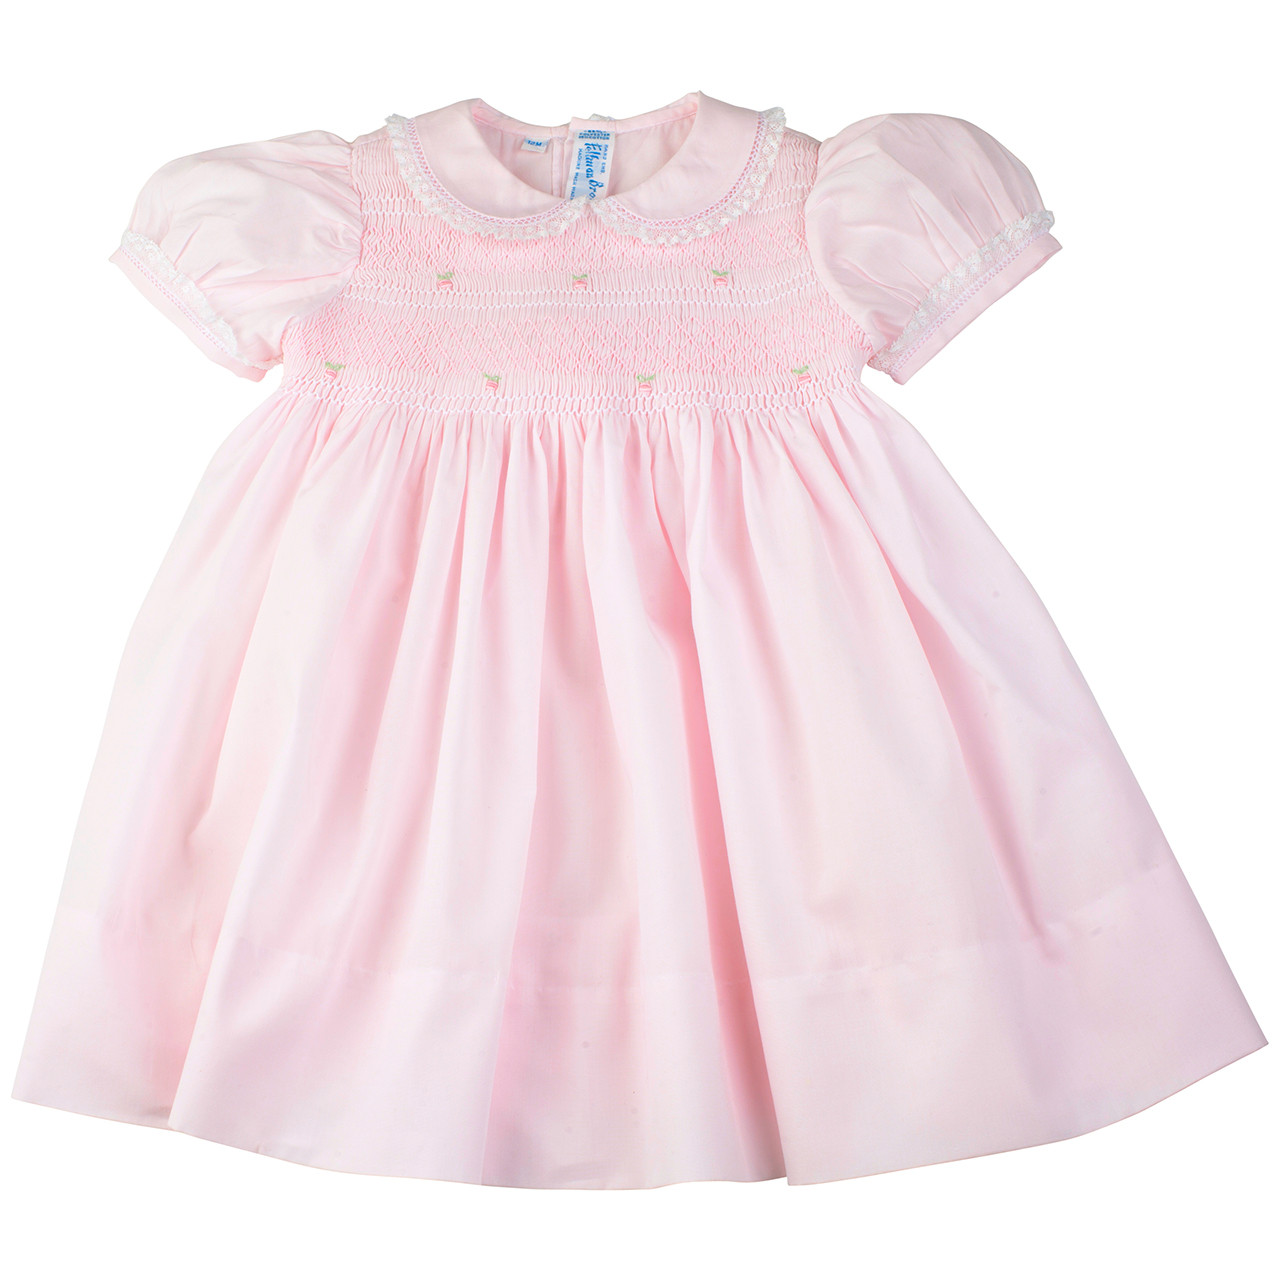 Shop Hiccups Childrens Boutique for newborn clothing, boys and girls take home outfits and heirloom newborn smocked dresses. Classic girls Christening gowns and boys Baptism outfits.